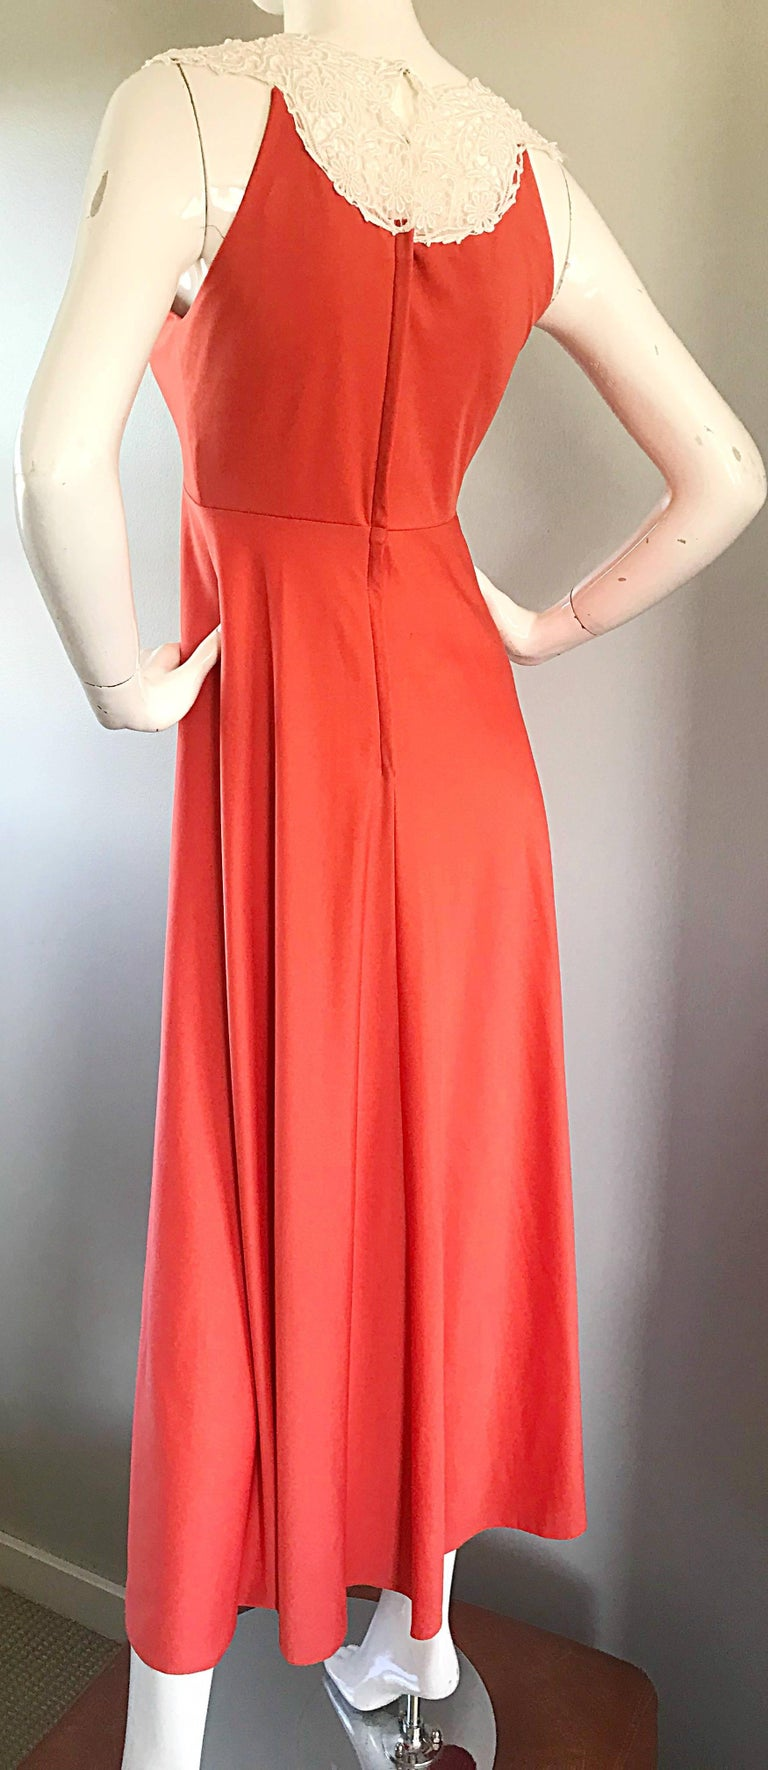 1970s Coral Salmon Pink Jersey + Crochet Lace Collar 70s Vintage Maxi Dress For Sale 6